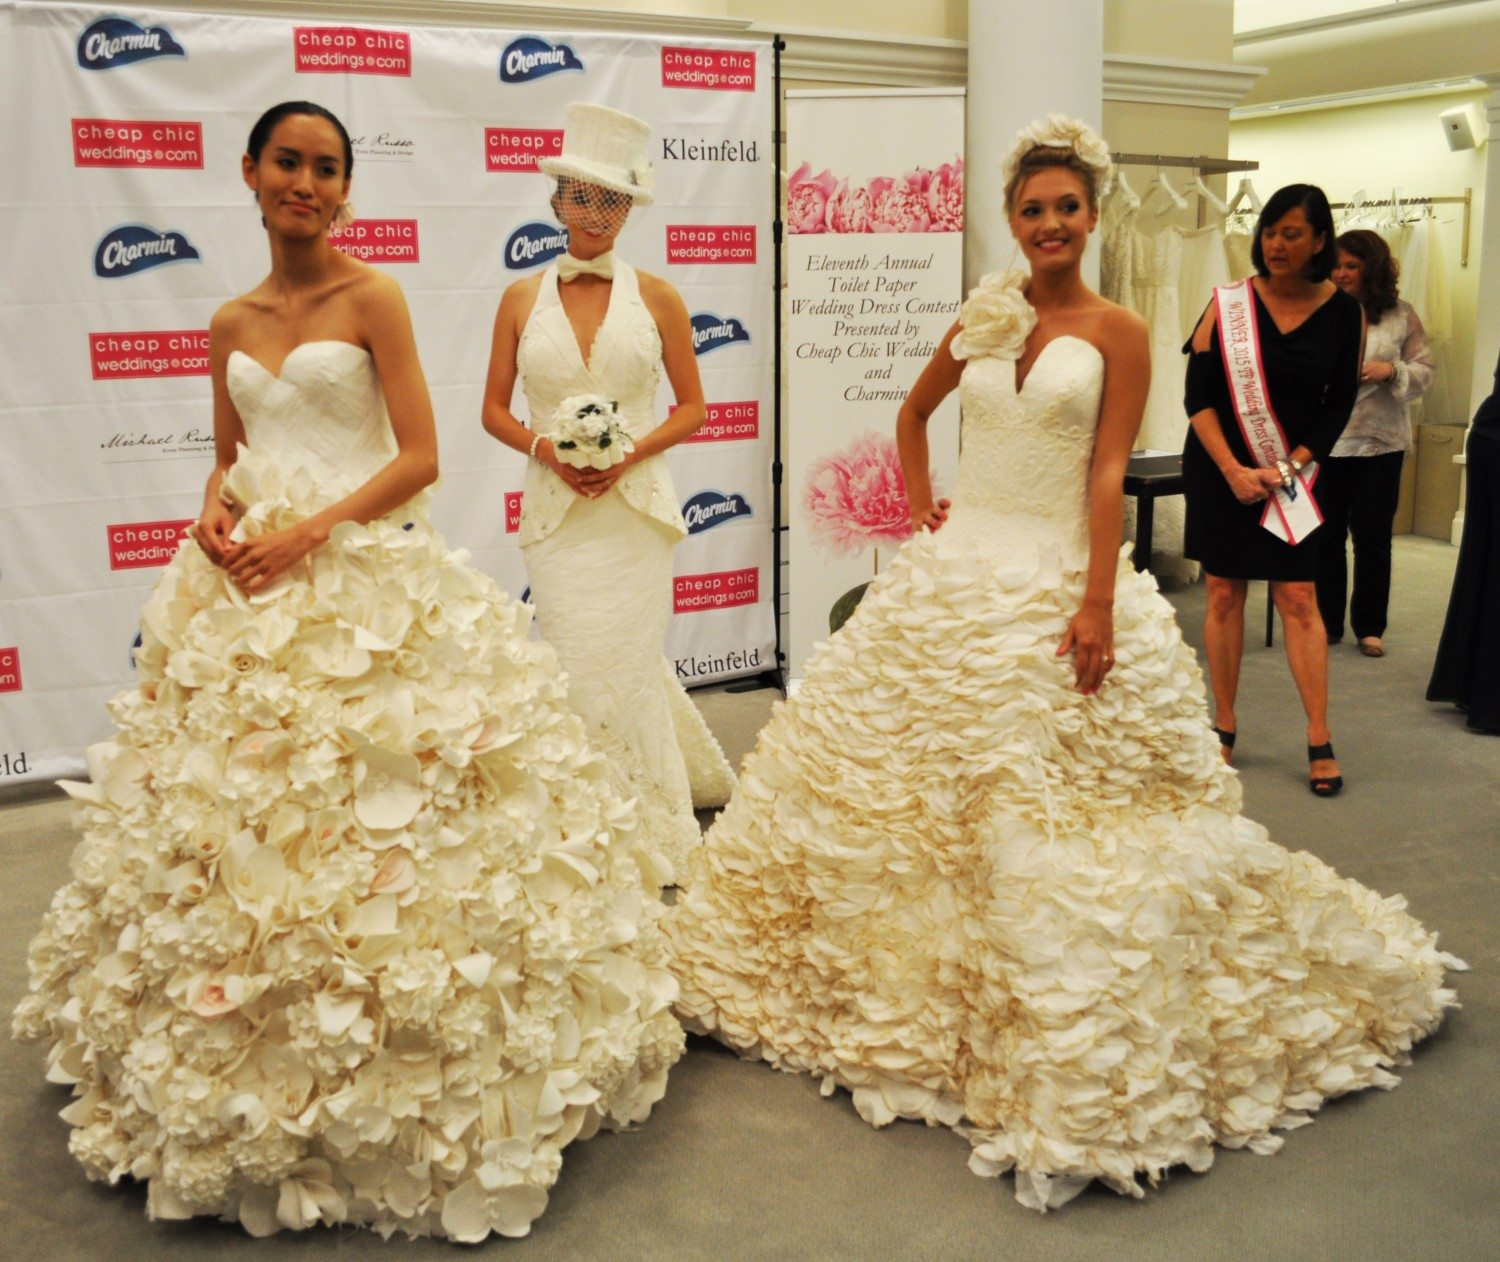 Cheap Chic Wedding Dress Winner Announced At Kleinfeld Bridal Downtown Magazine